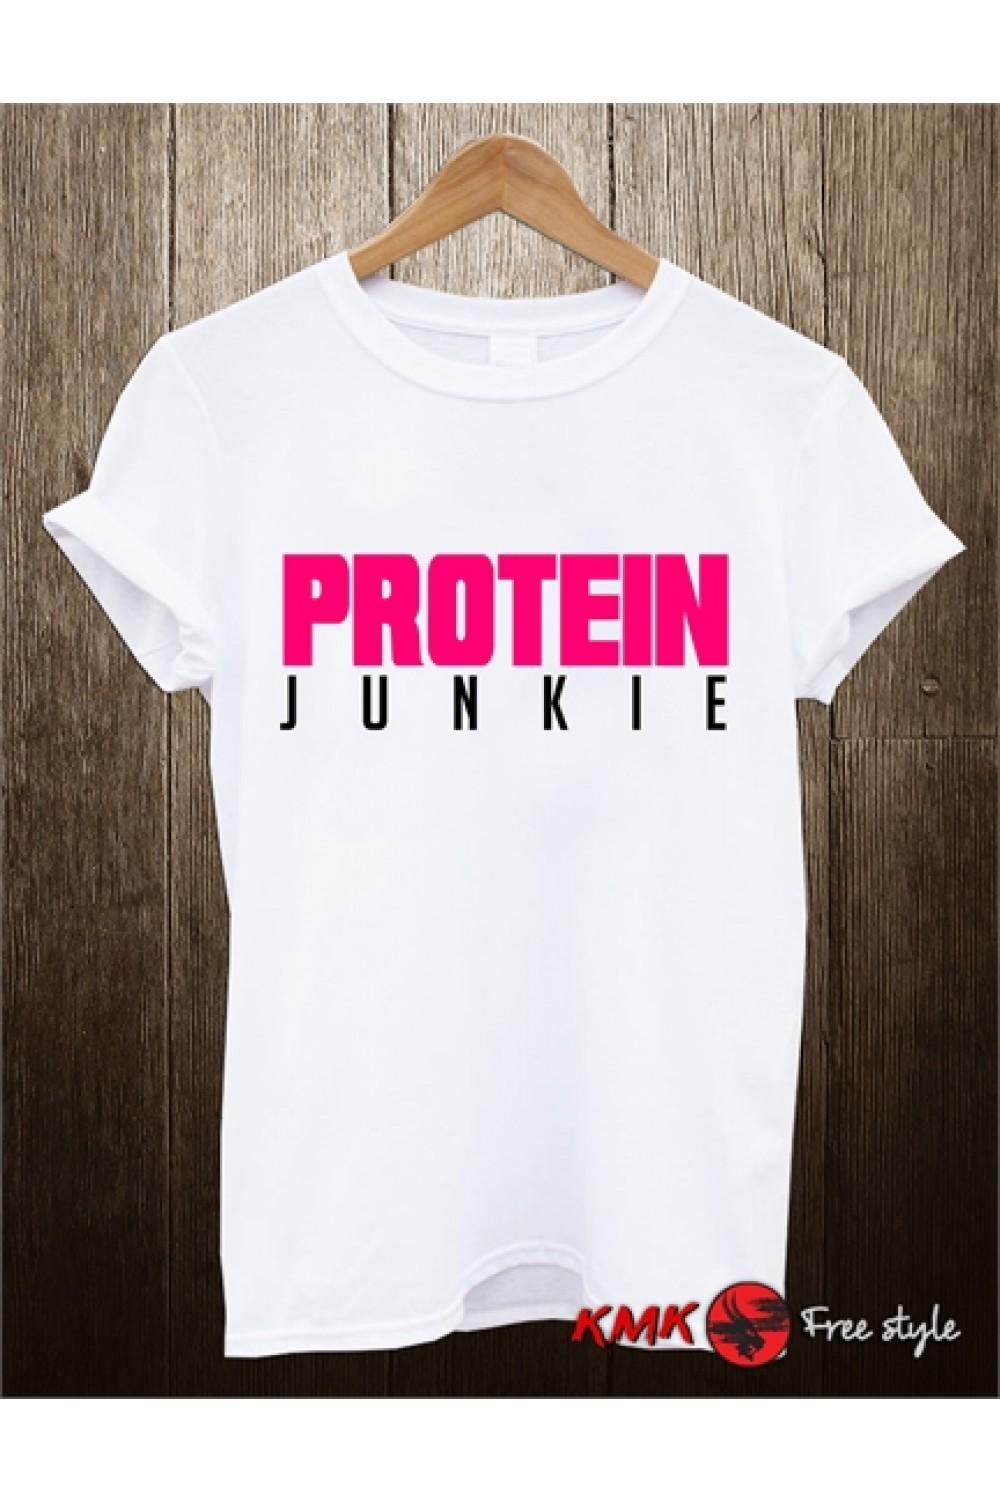 Protein Junkie Printed T shirt | Sport Tanktop | Fitness Tee | Long and Short Shirt